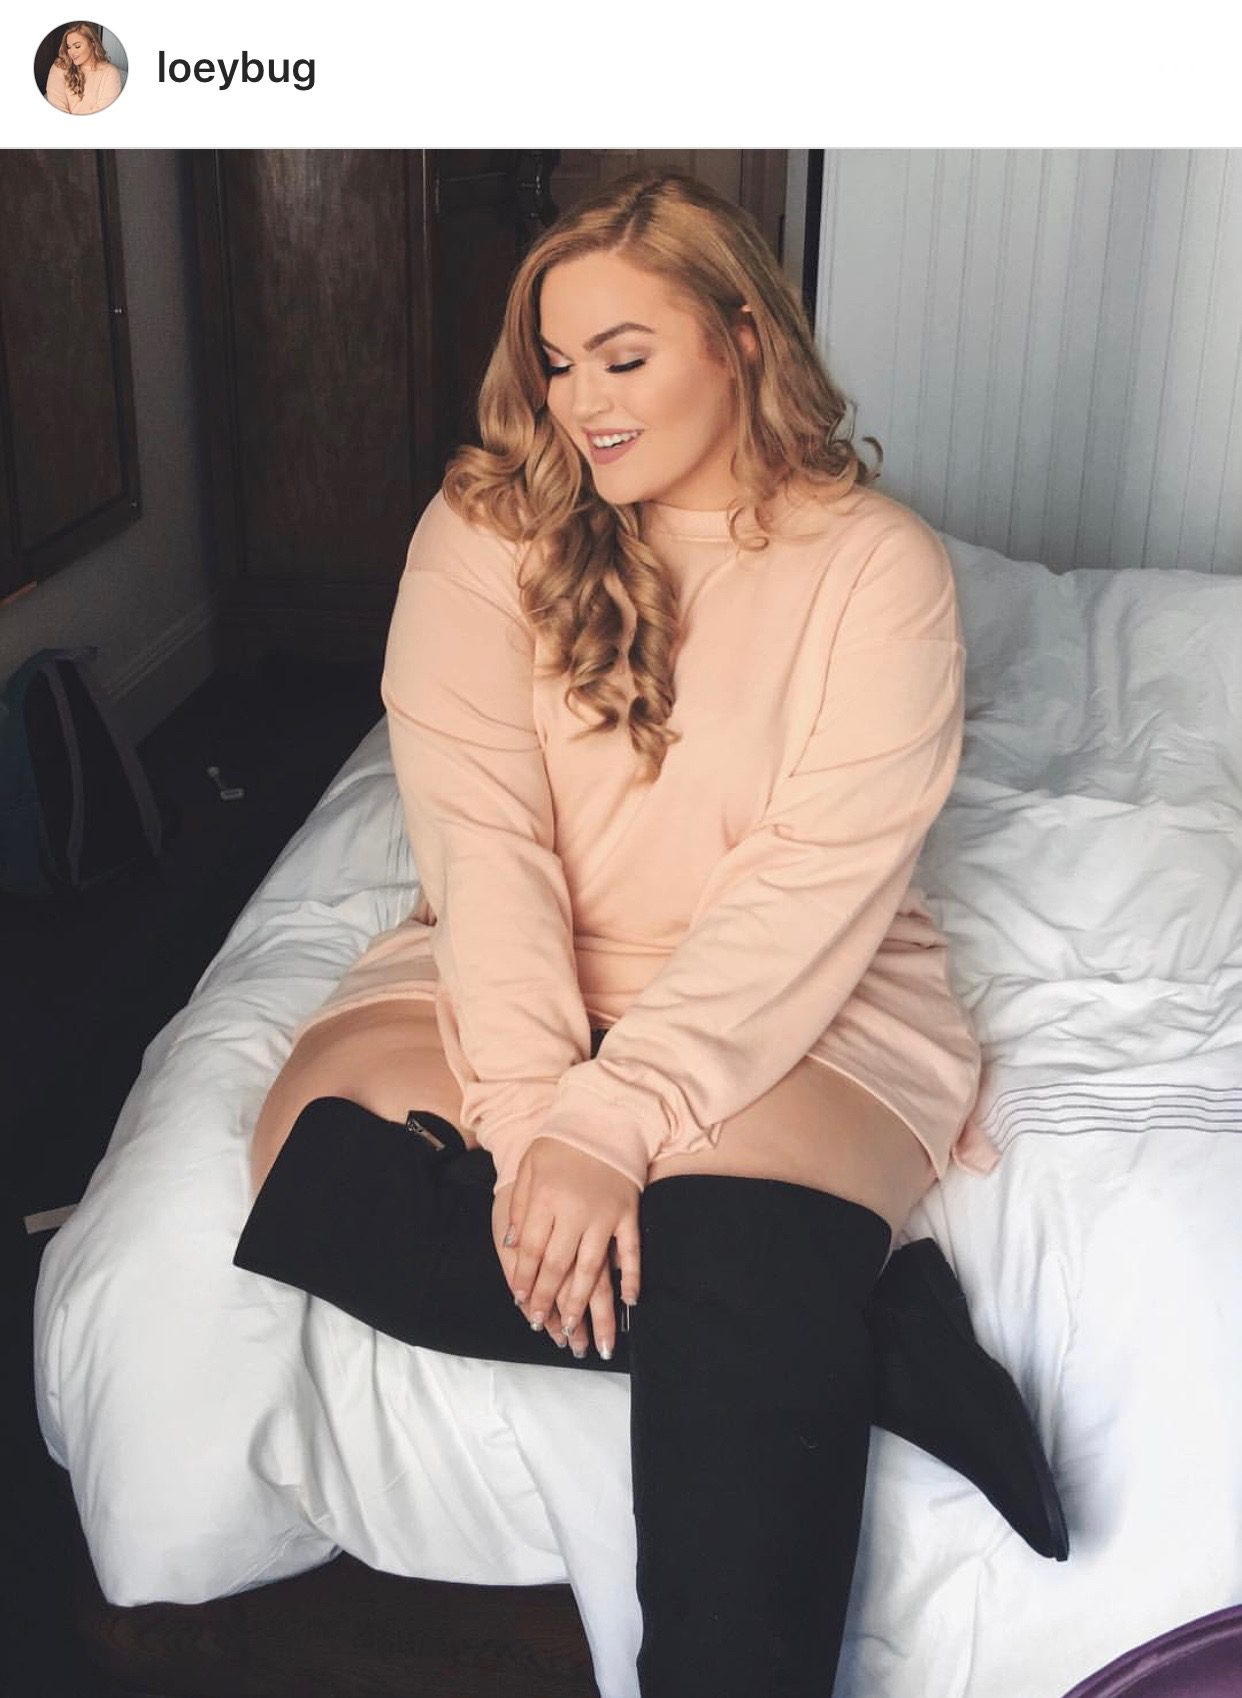 17 Plus-Size Instagram Accounts I'm Loving {a Lot!}